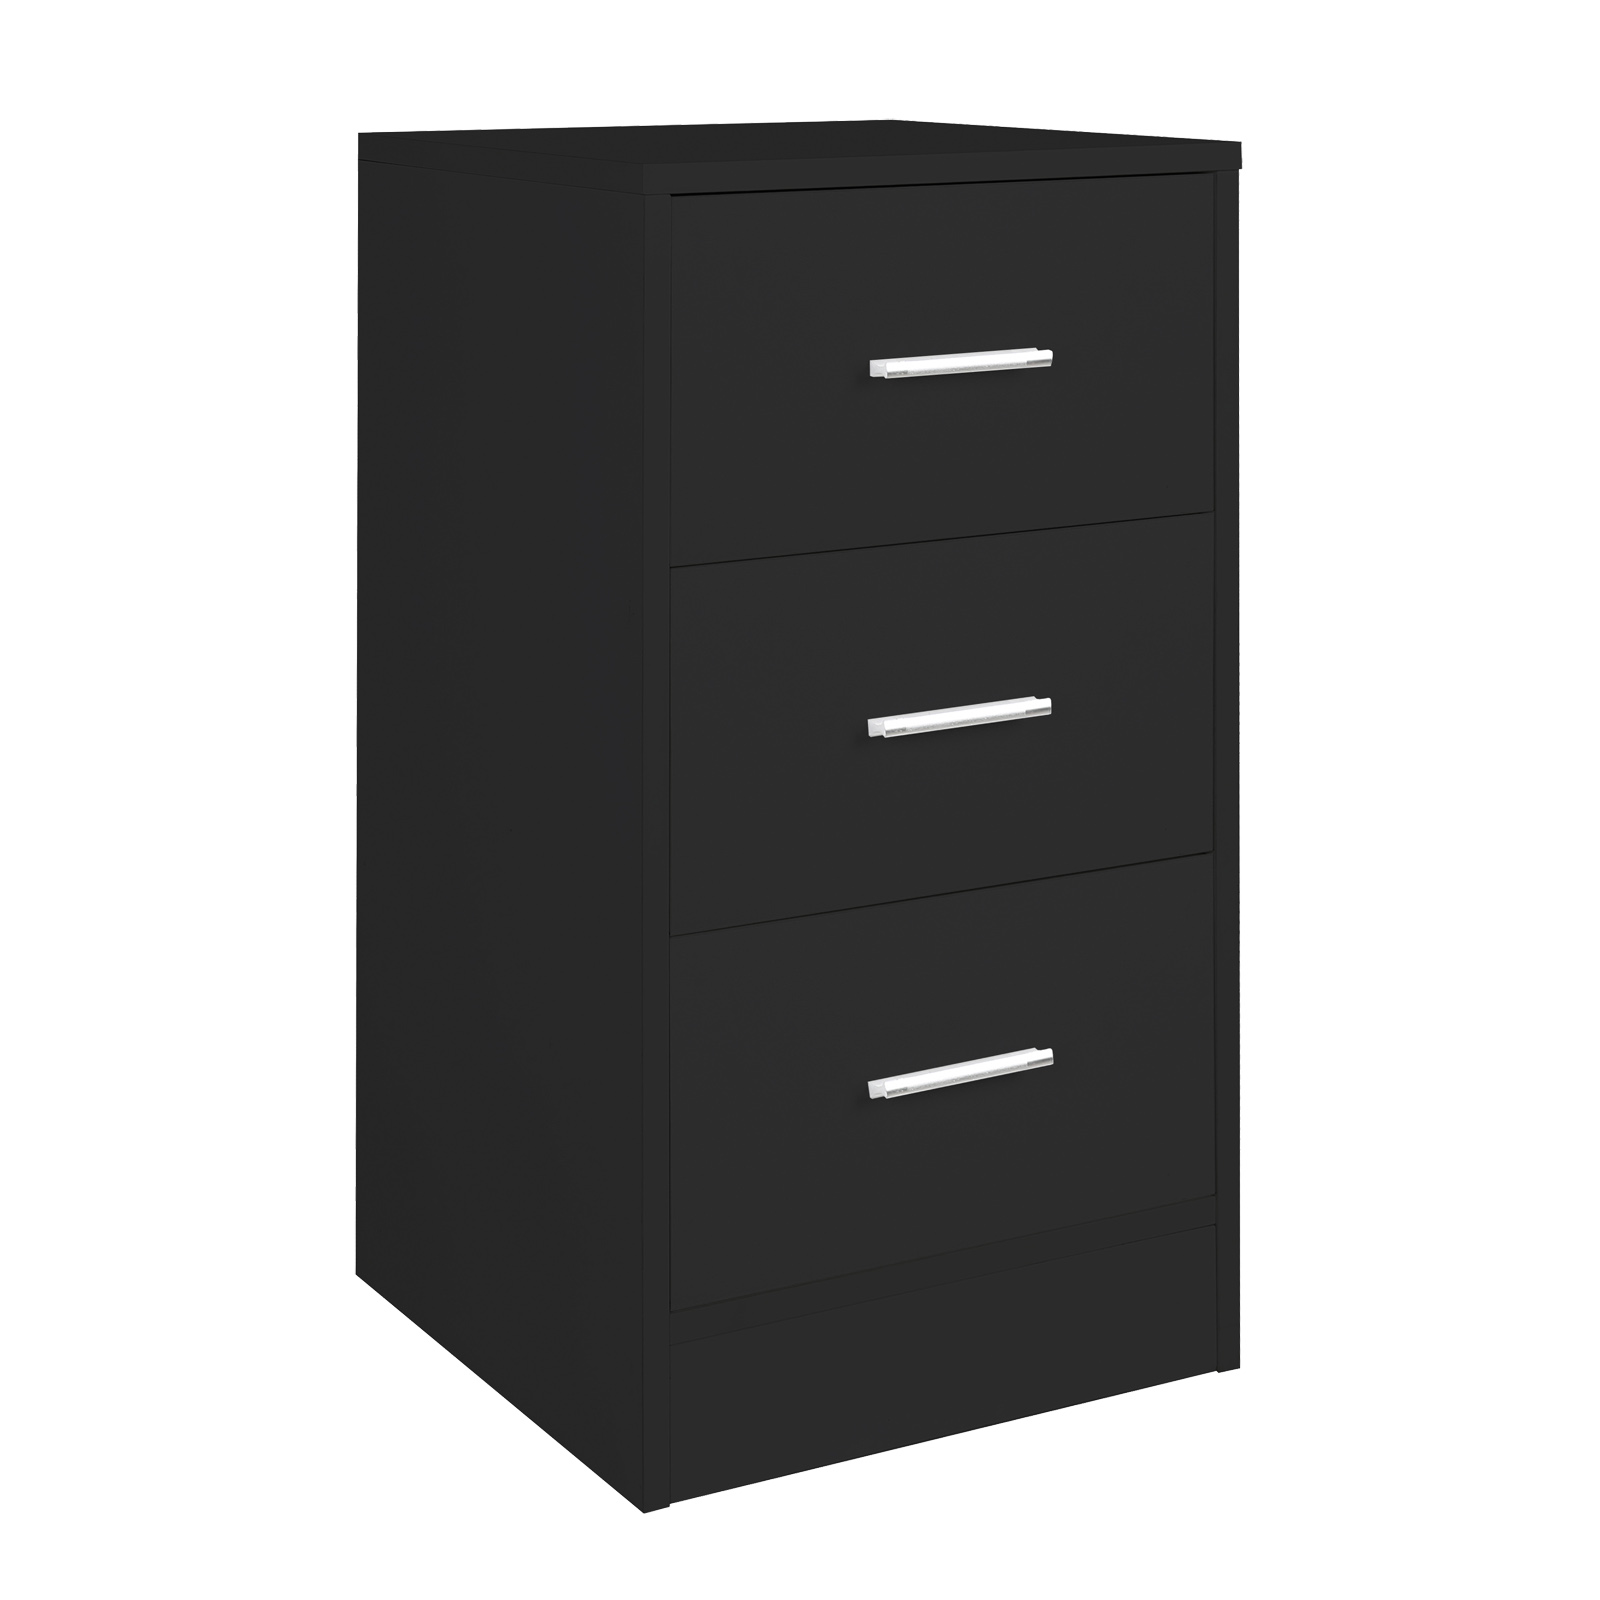 nachtkommode boxspringbett nachtschrank nachttisch kommode. Black Bedroom Furniture Sets. Home Design Ideas